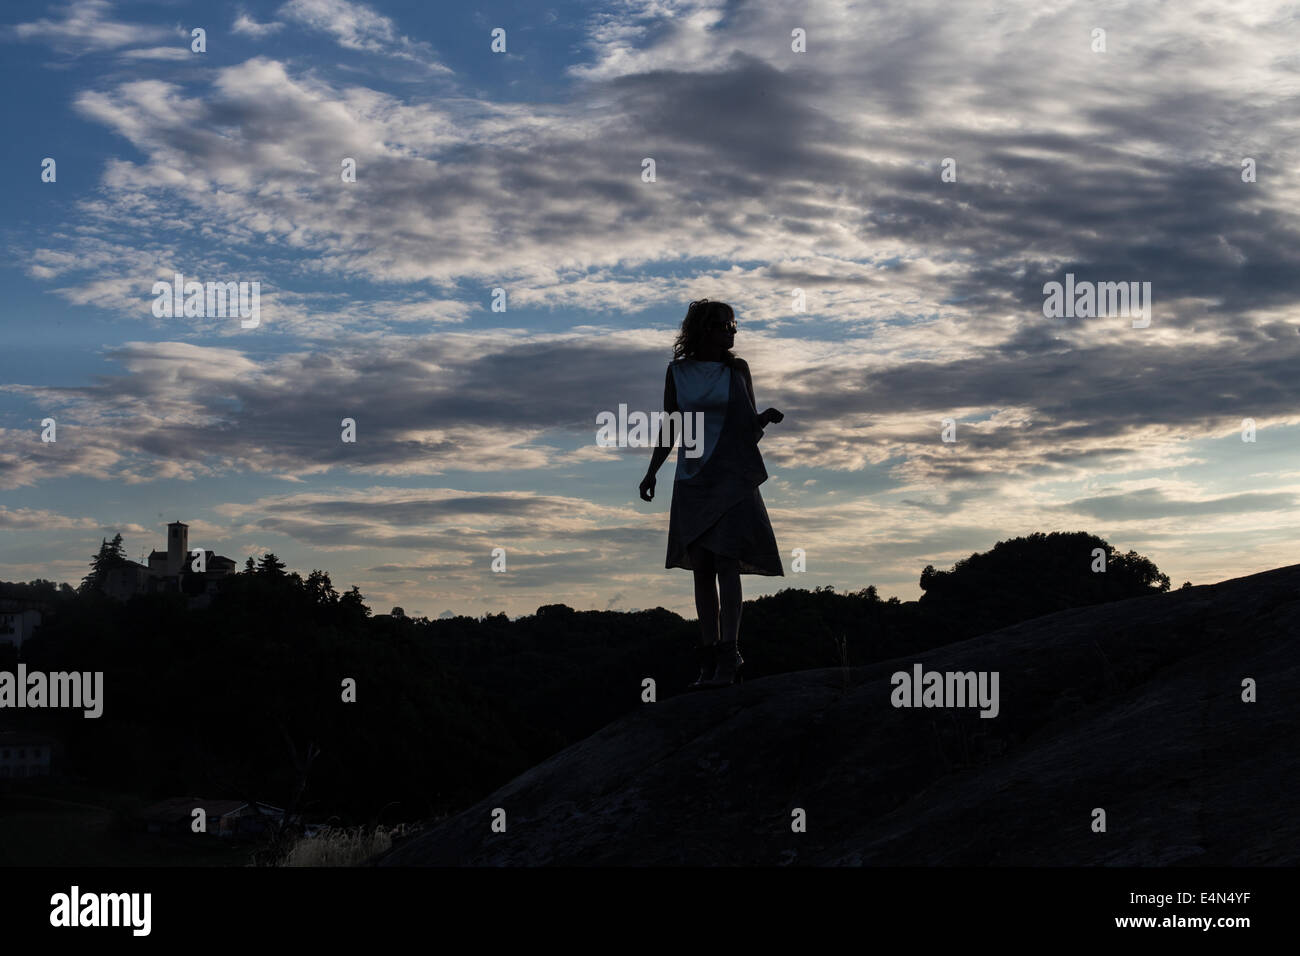 silhouette of a woman lost at sunset in a dress holding a bag with clouds in the background - Stock Image